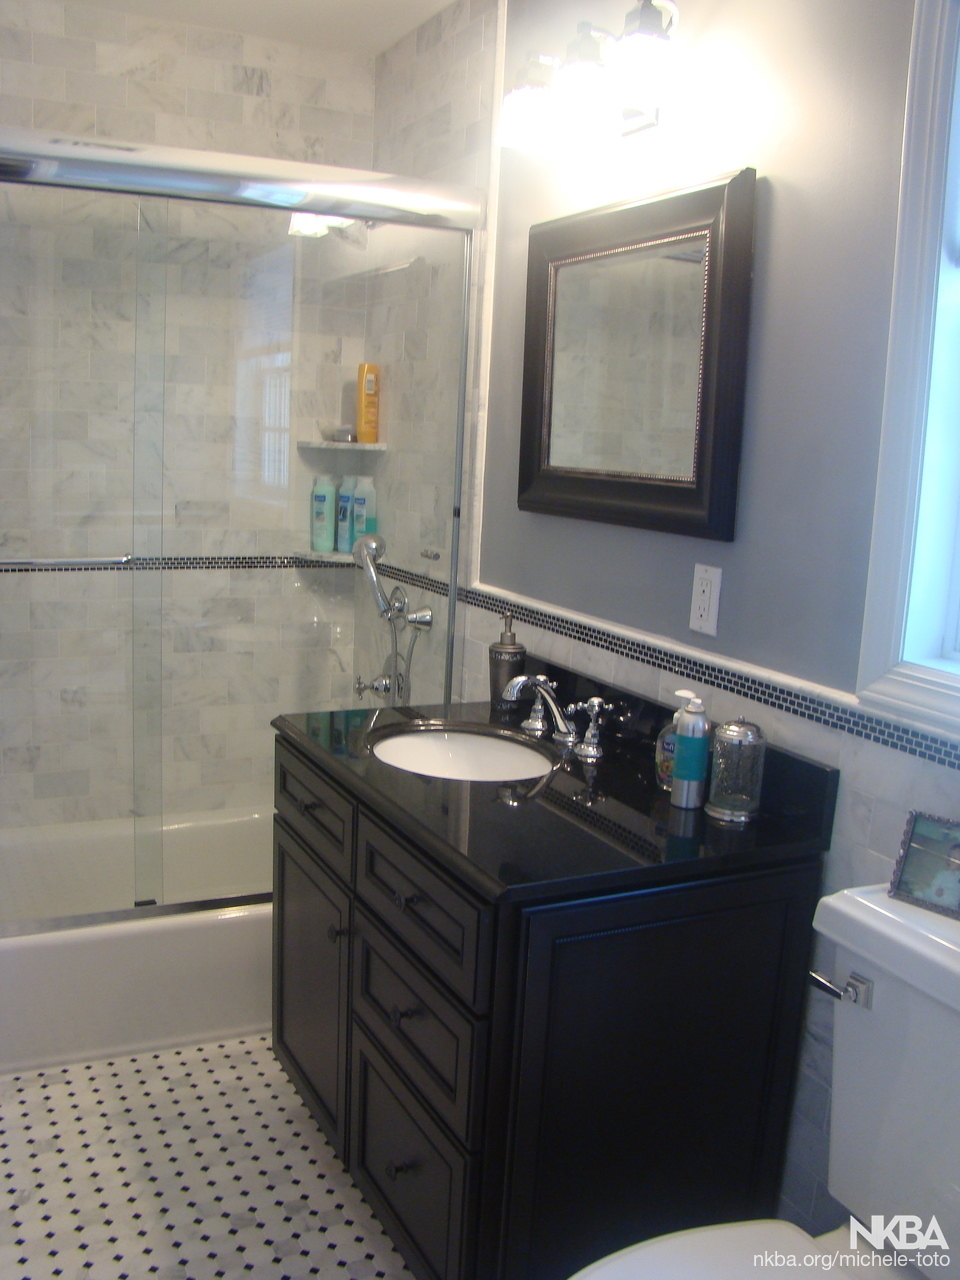 Outstanding Bathroom Thomasville Cabinetry With Nemo Tiles Nkba Interior Design Ideas Clesiryabchikinfo